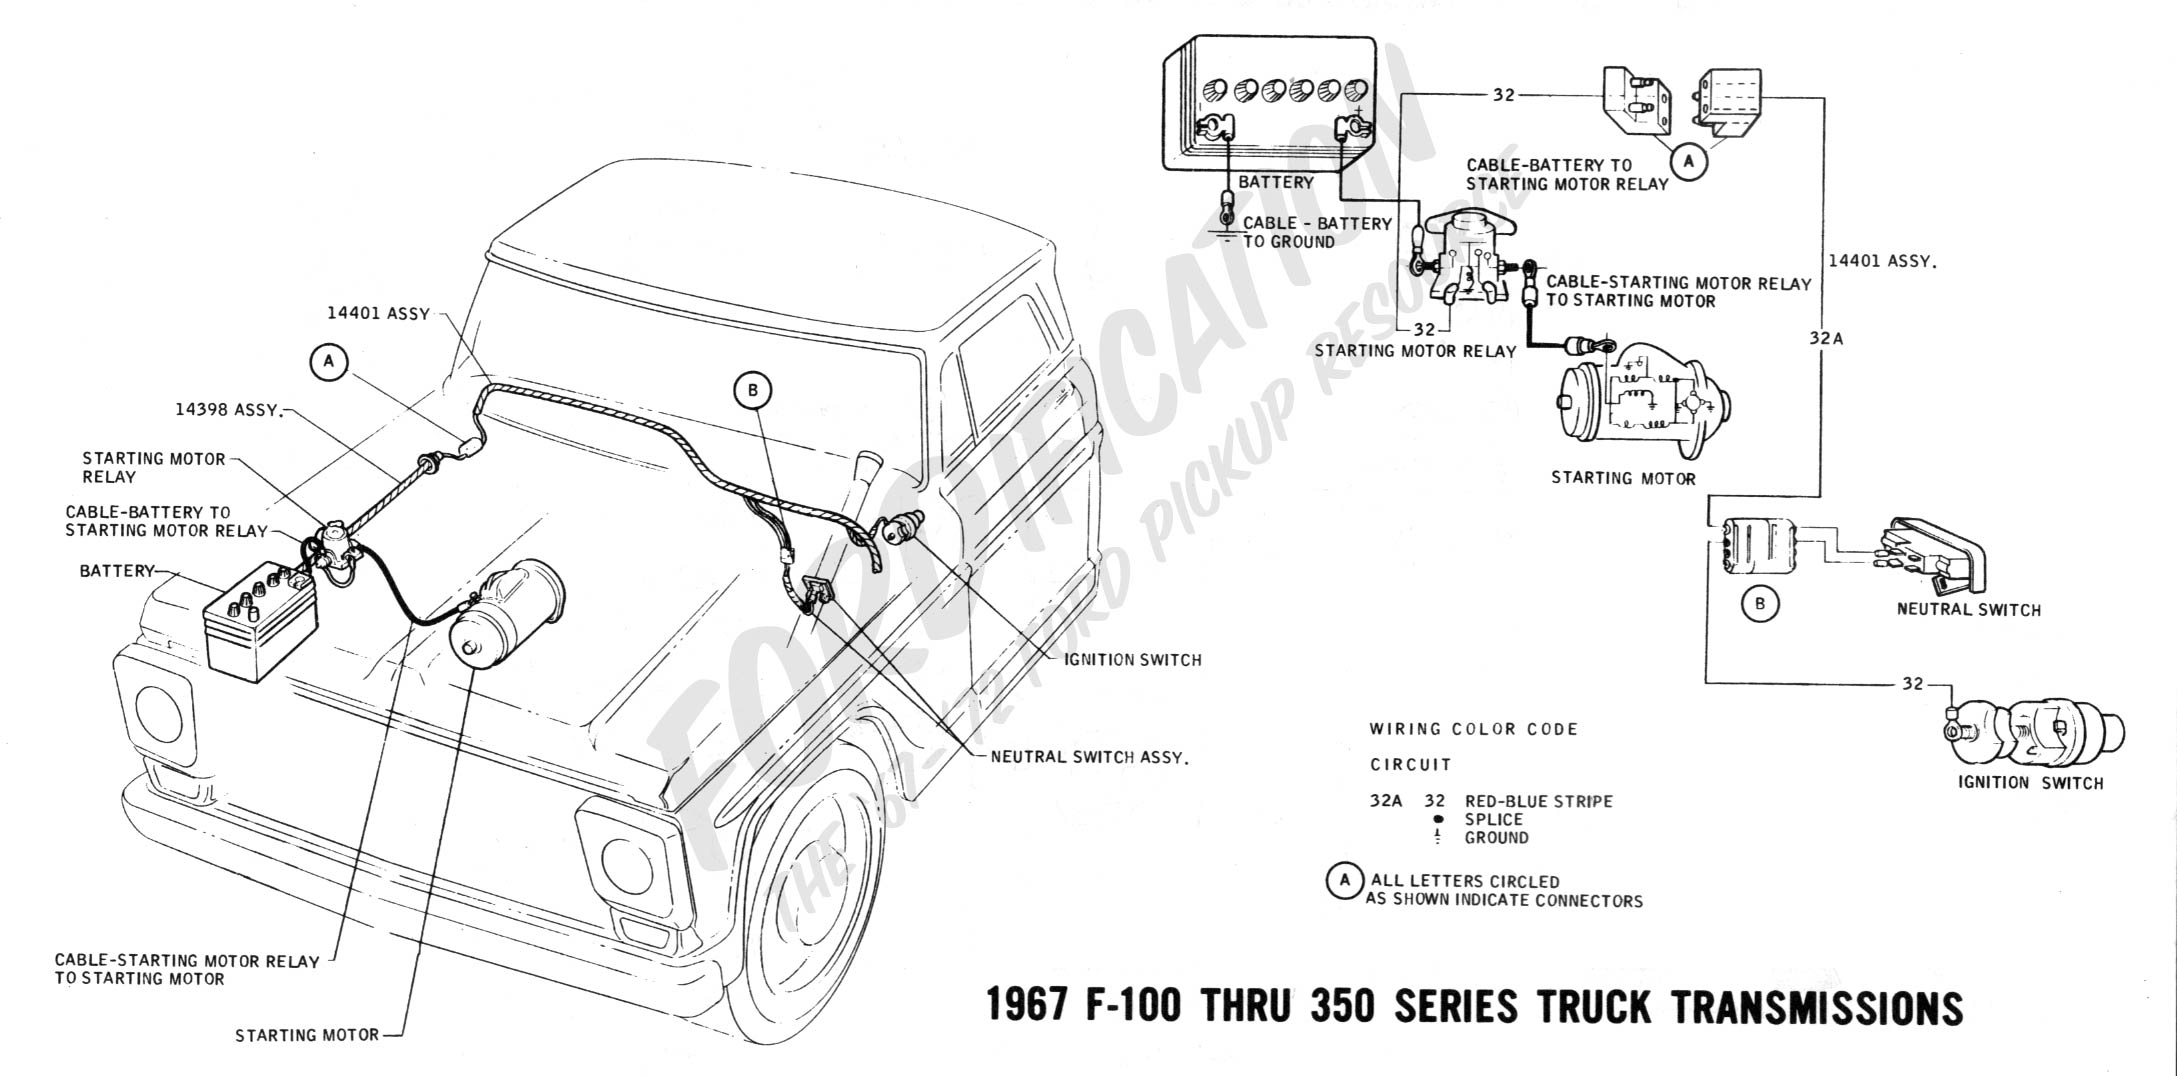 Wiring Diagram Together With Ford Transit Wiring Diagram Also 97 Ford